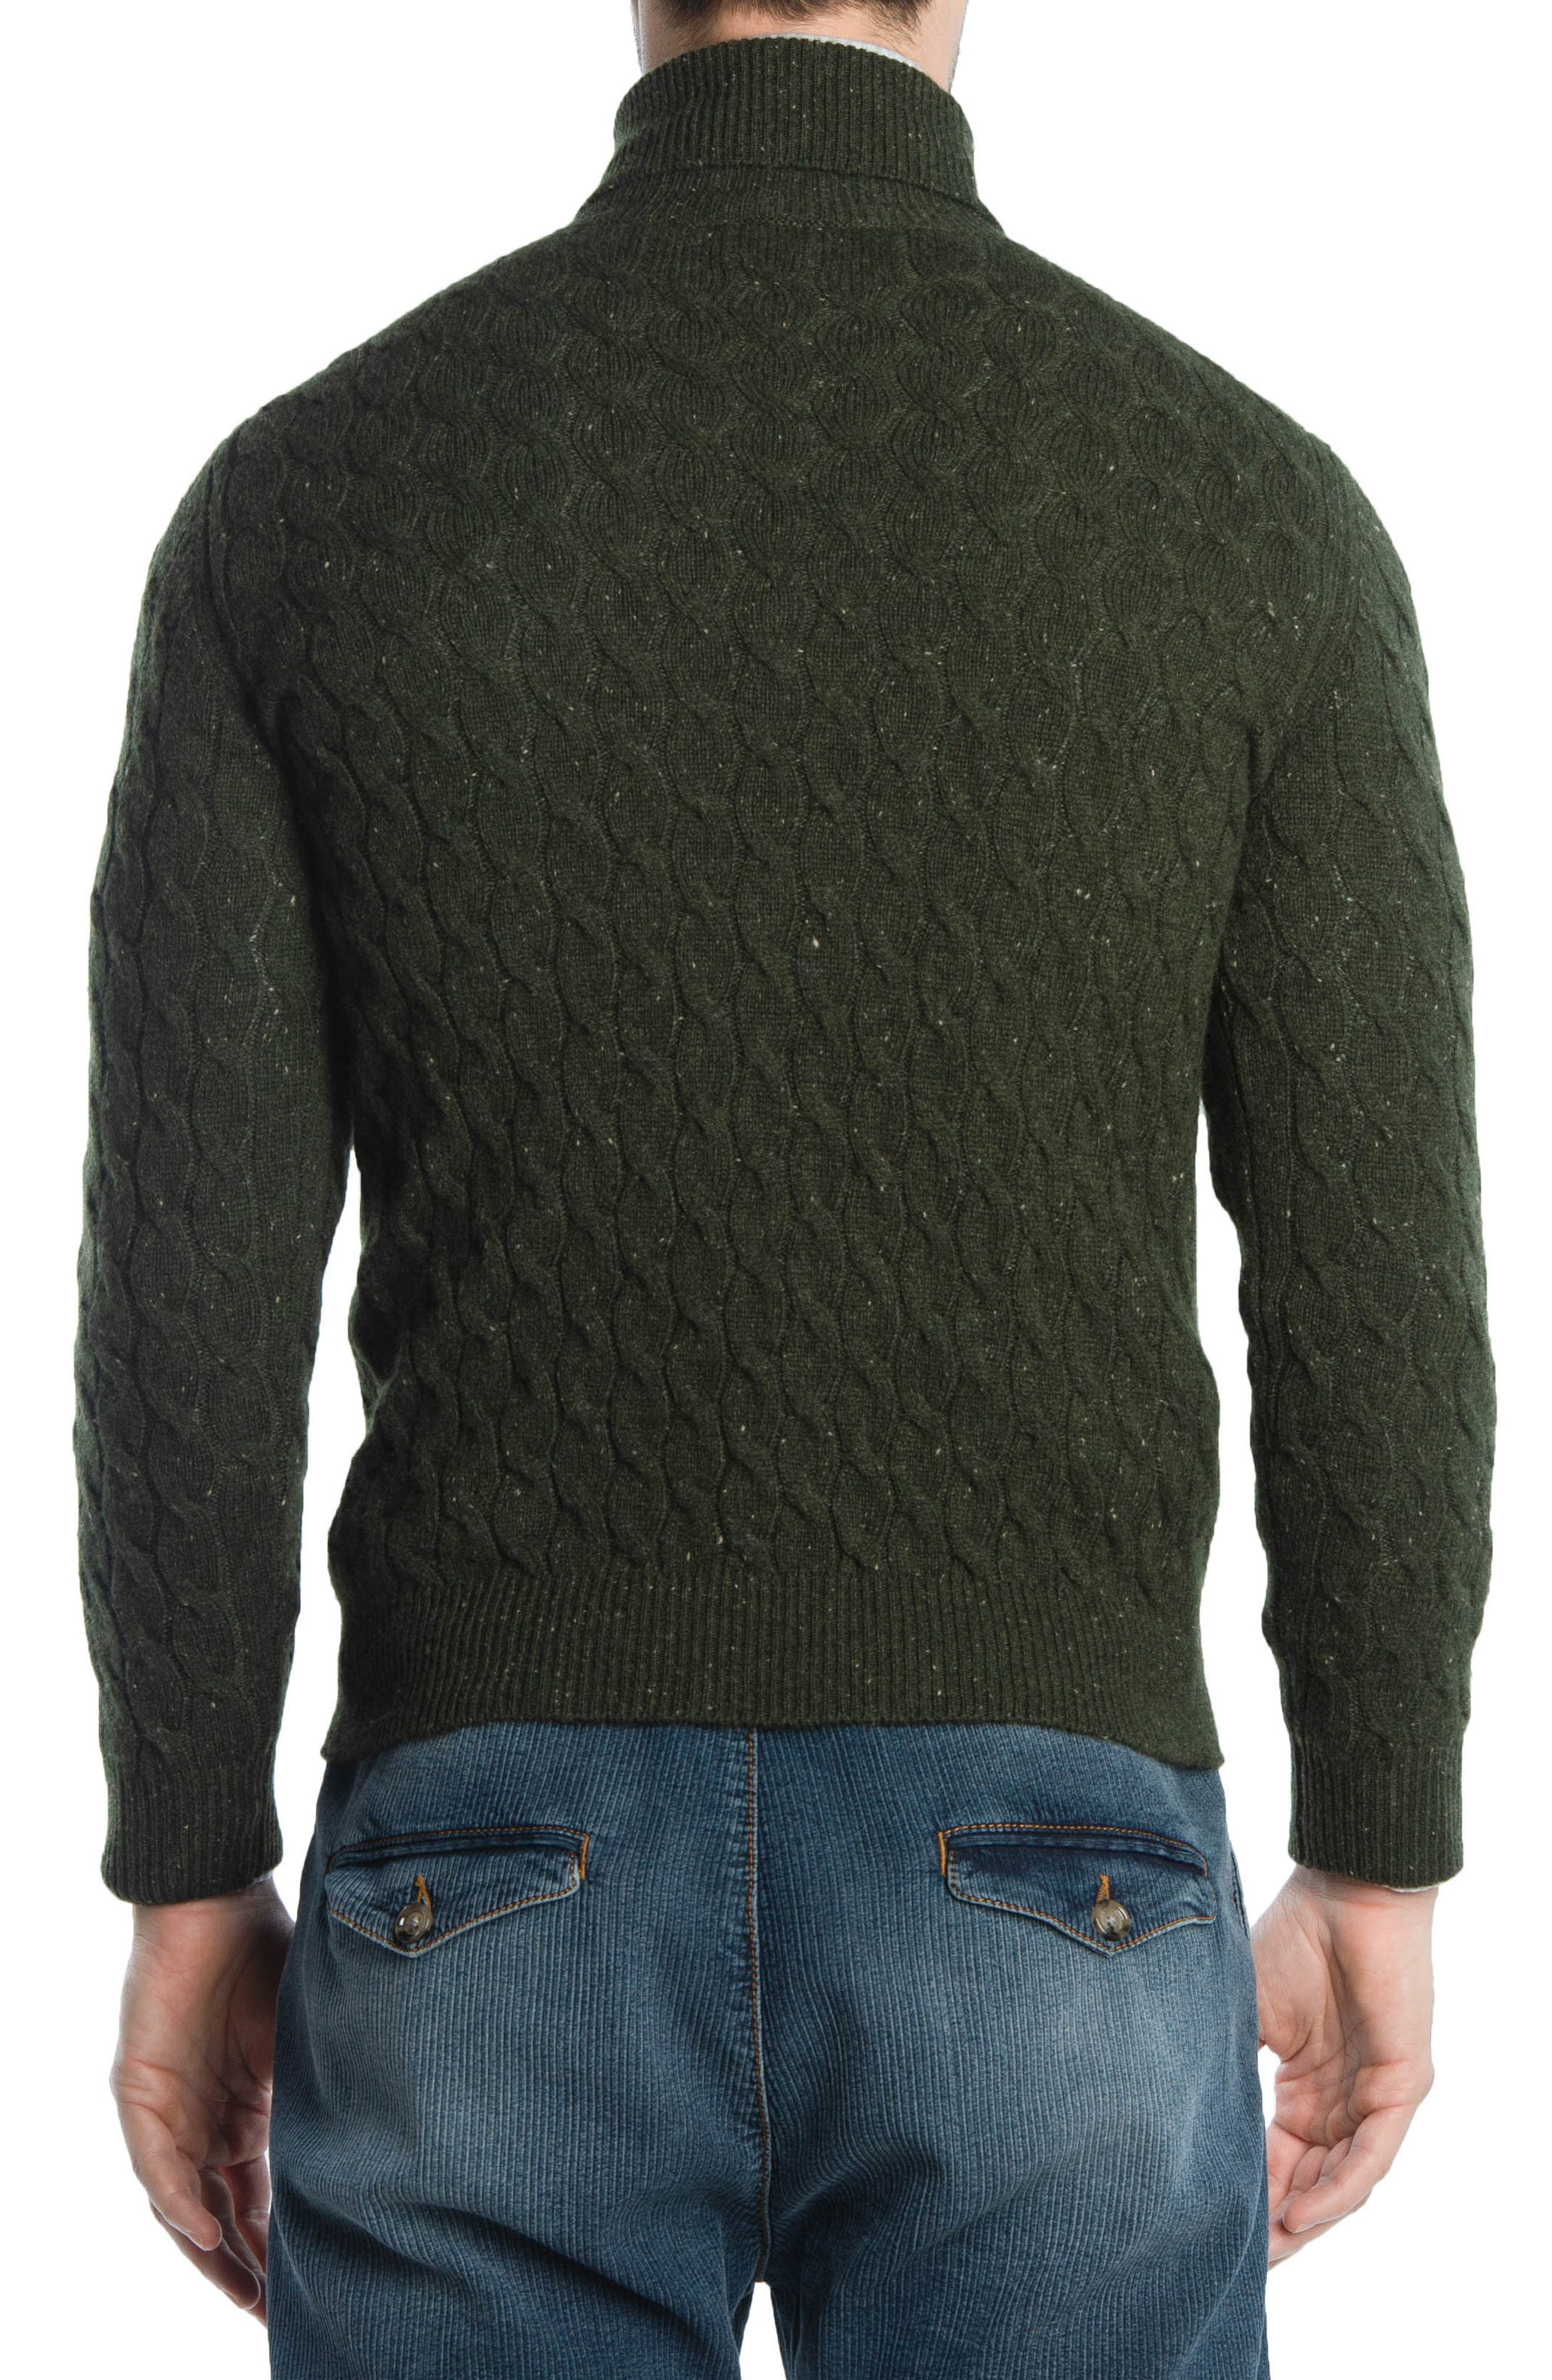 Cableknit Turtleneck Cashmere Sweater,                             Alternate thumbnail 2, color,                             GREEN